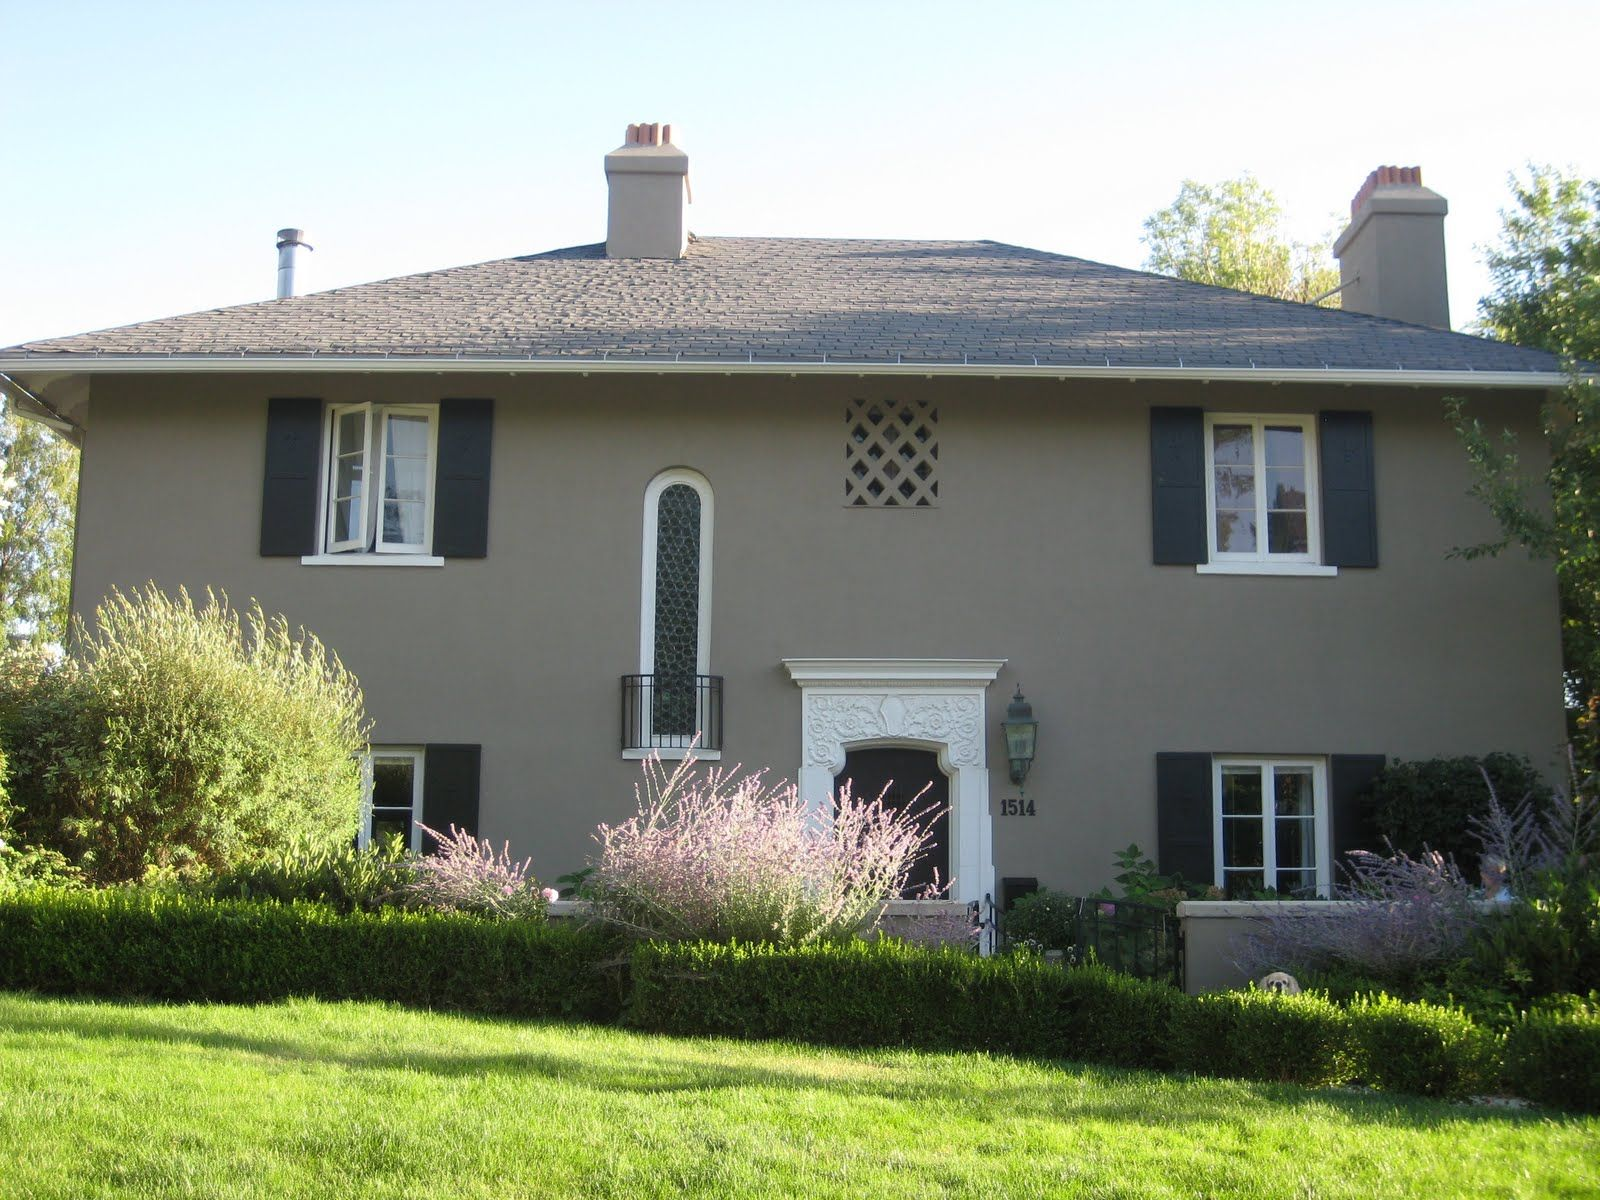 Stucco exterior house paint colors homes channel front - Painting a stucco house exterior ...